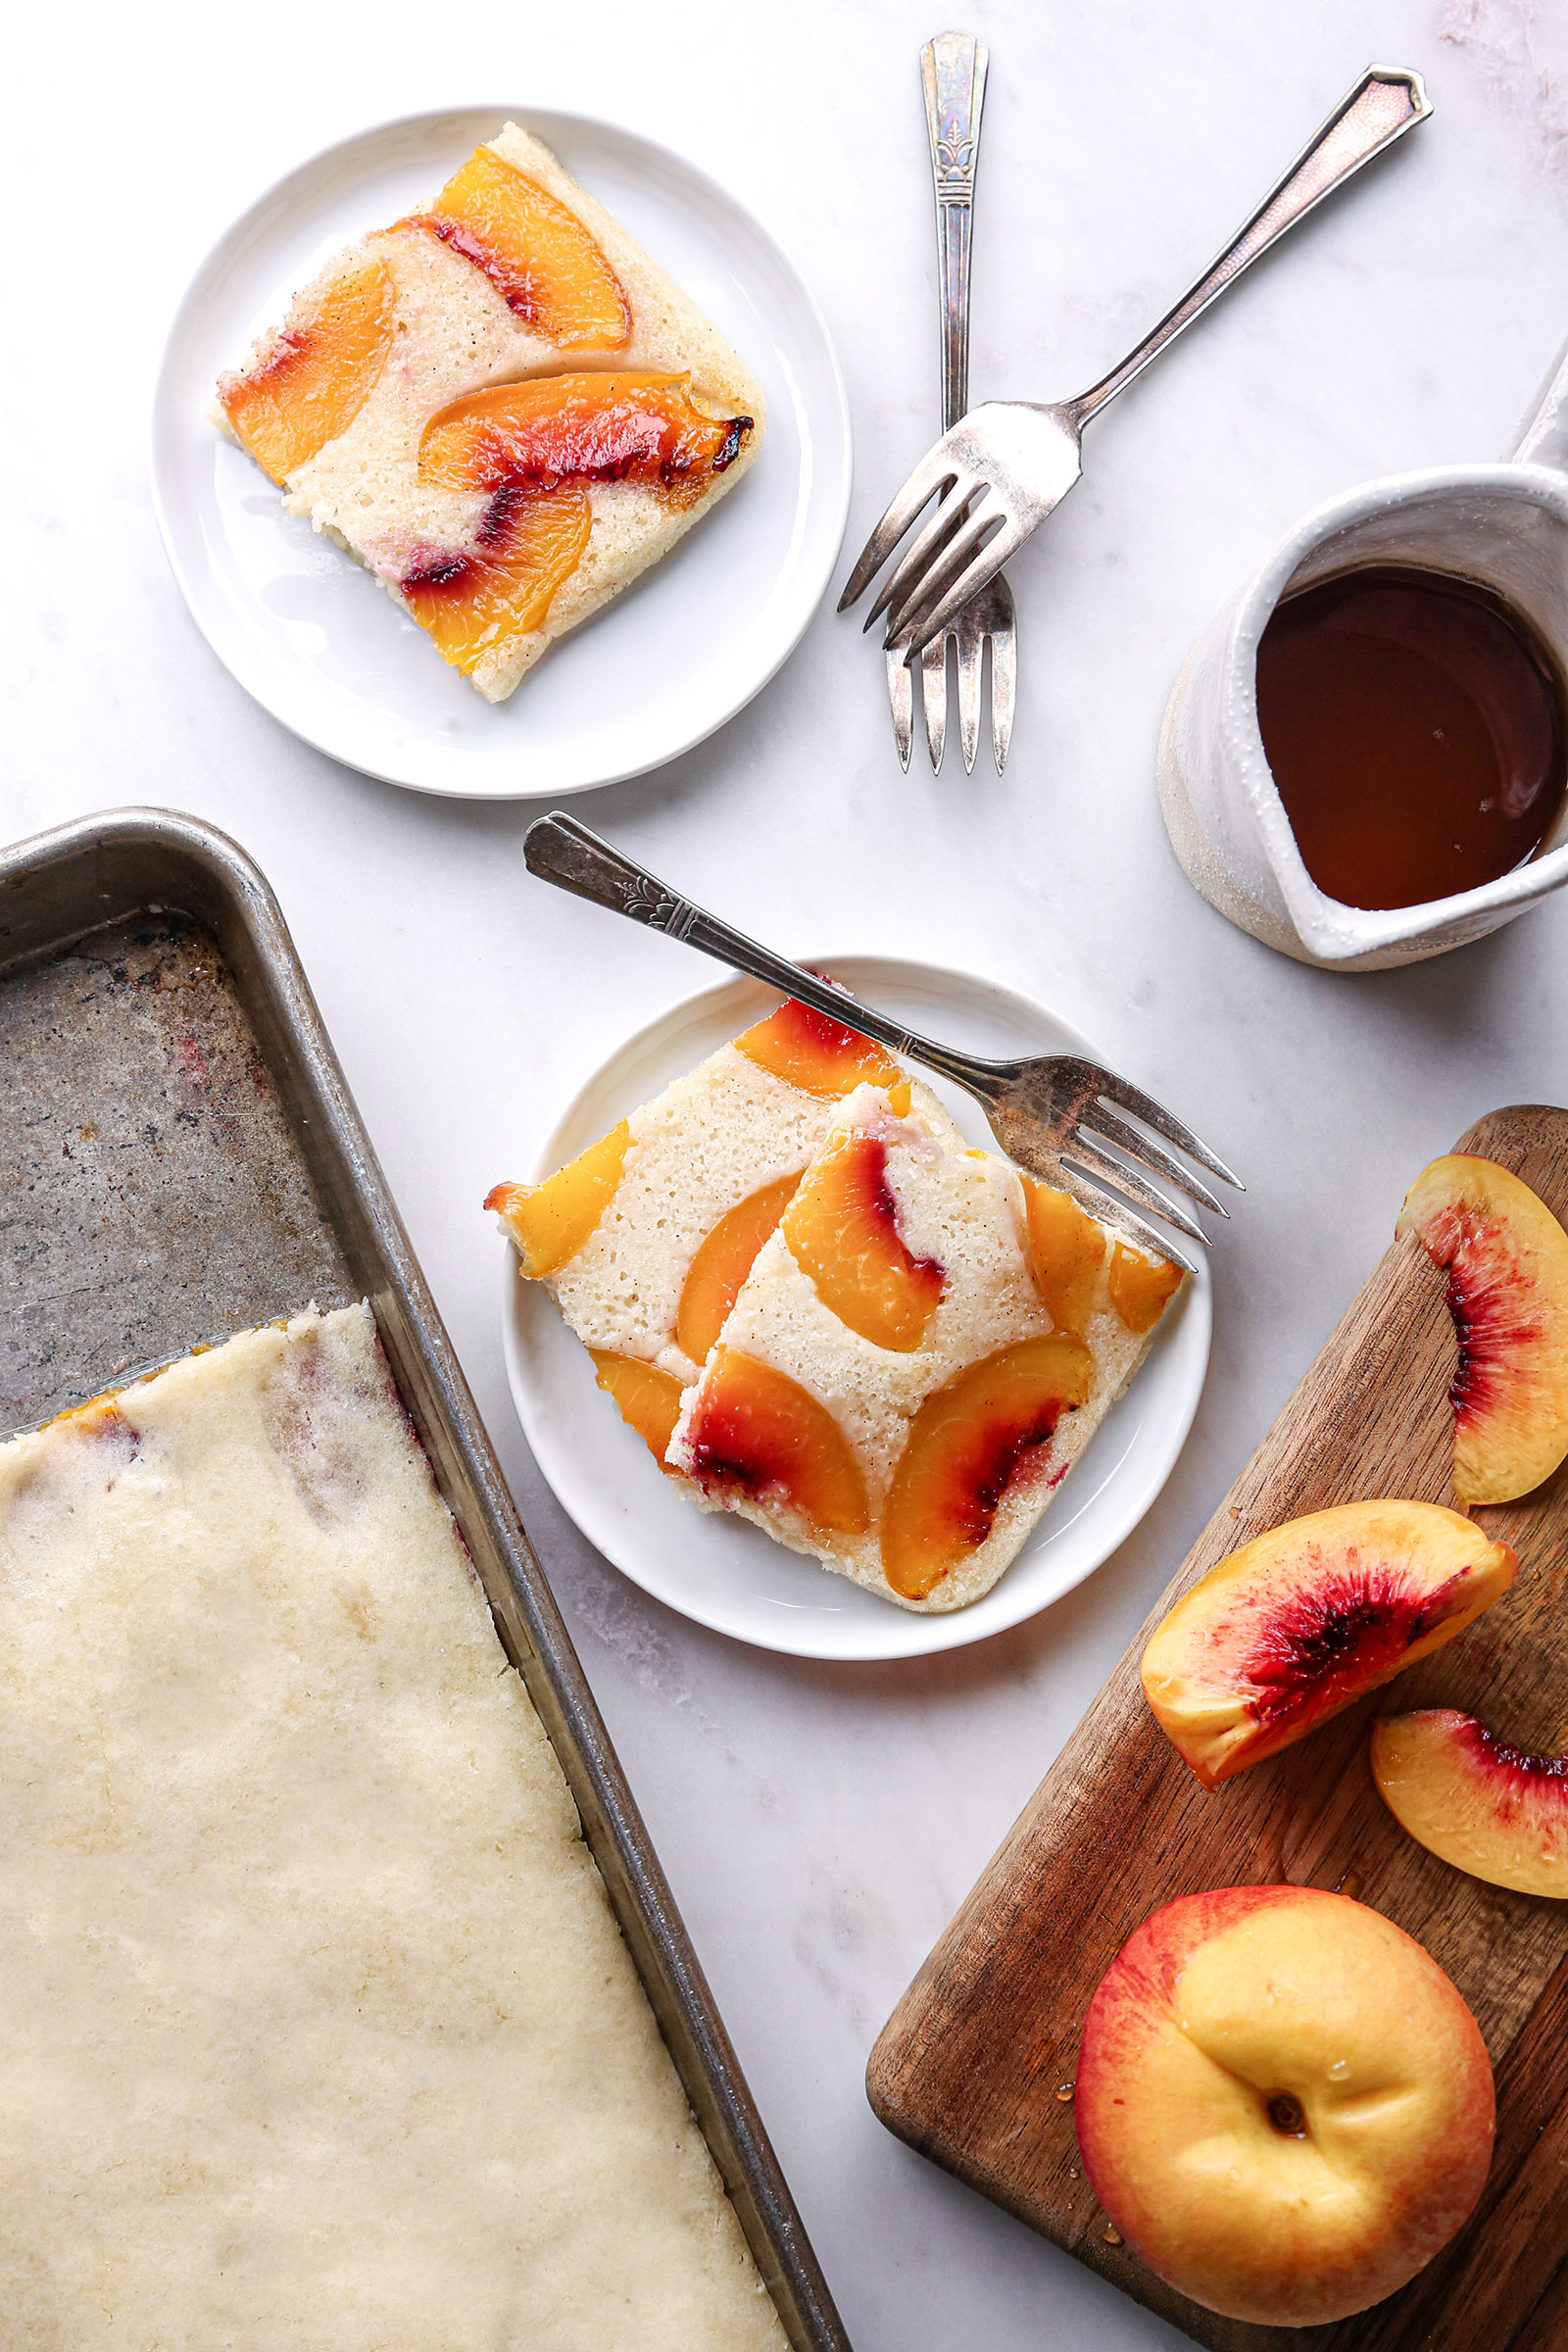 Baked Upside Down Pancakes with Fruit | Vegan with gluten free and refined sugar free option.